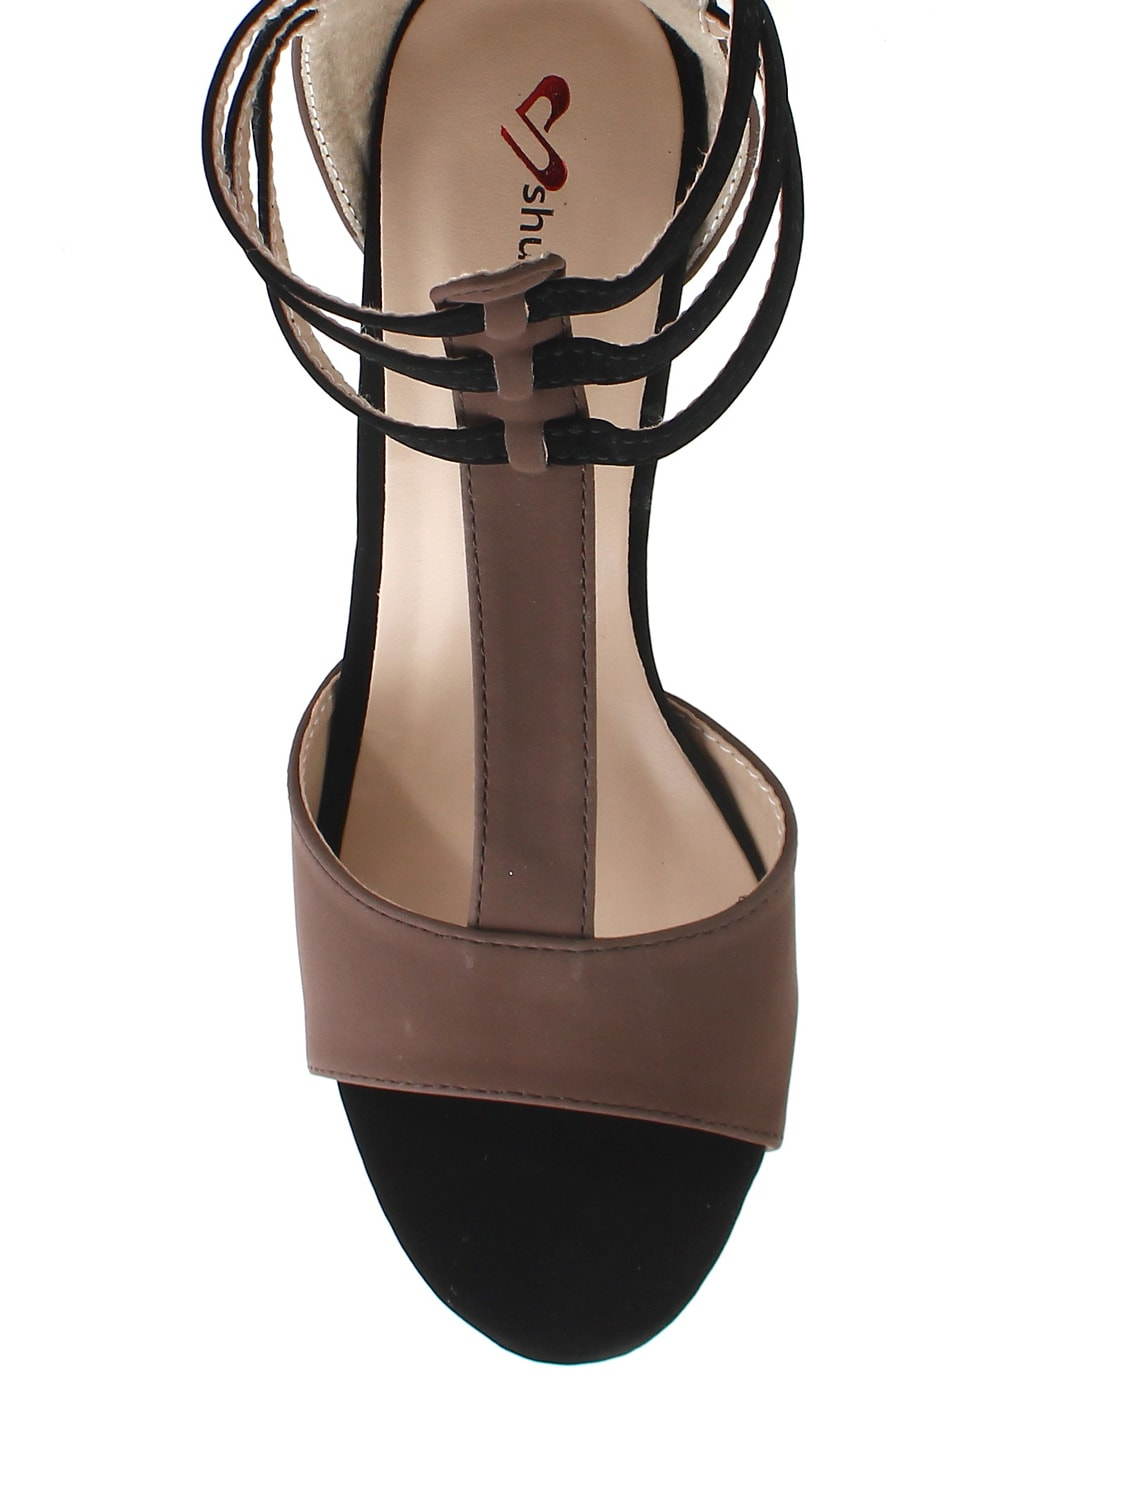 60f5e41a5 Buy Brown Faux Leather Gladiators Sandals for Women from Shuberry ...